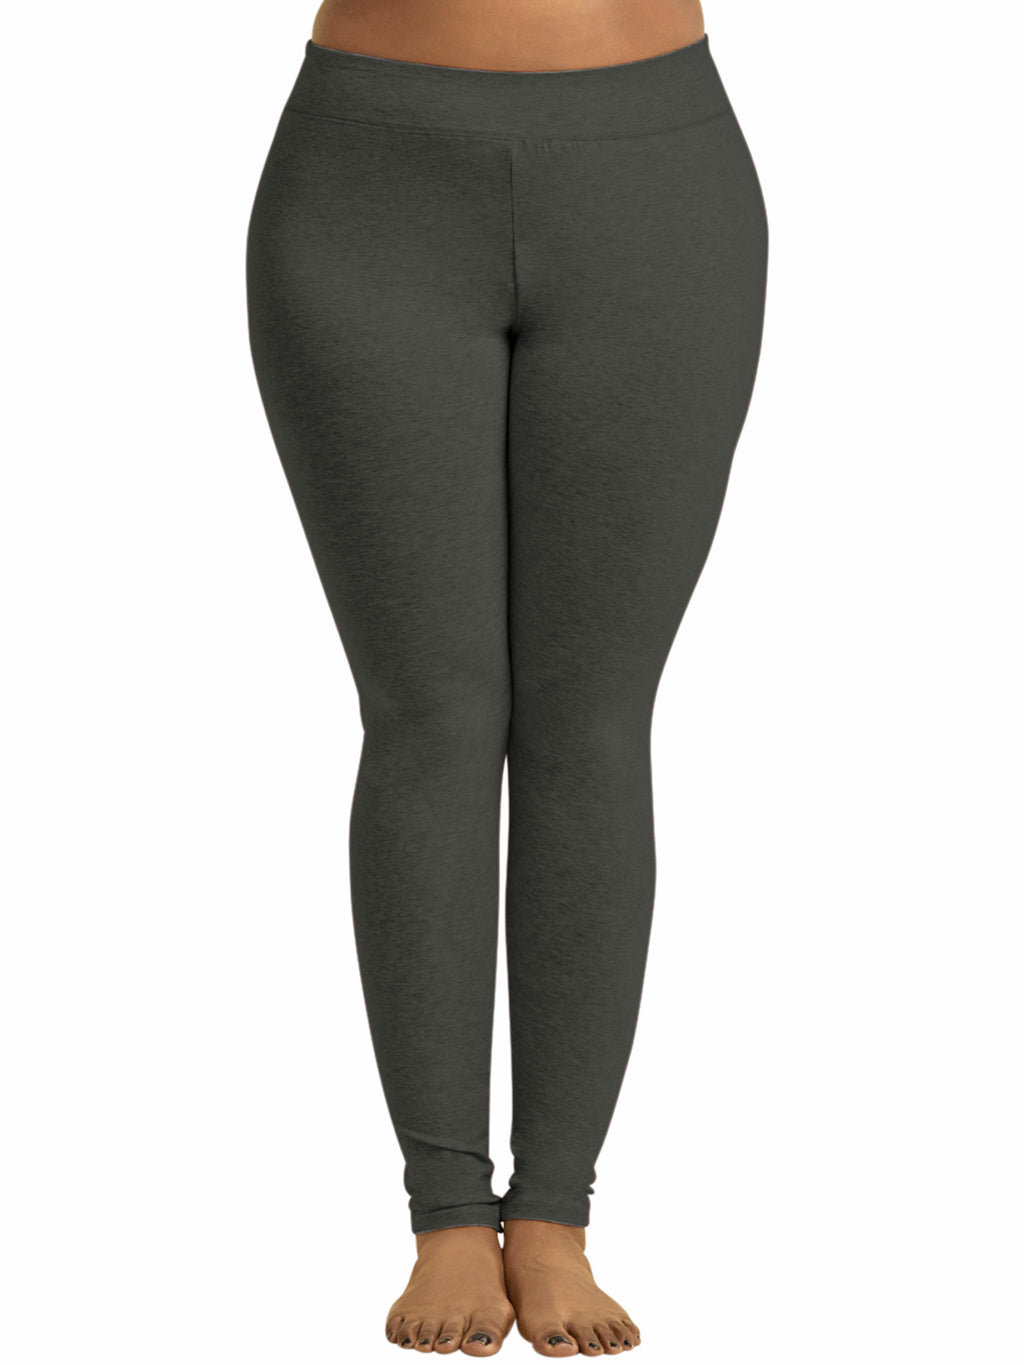 Womens Plus Size Cotton Leggings